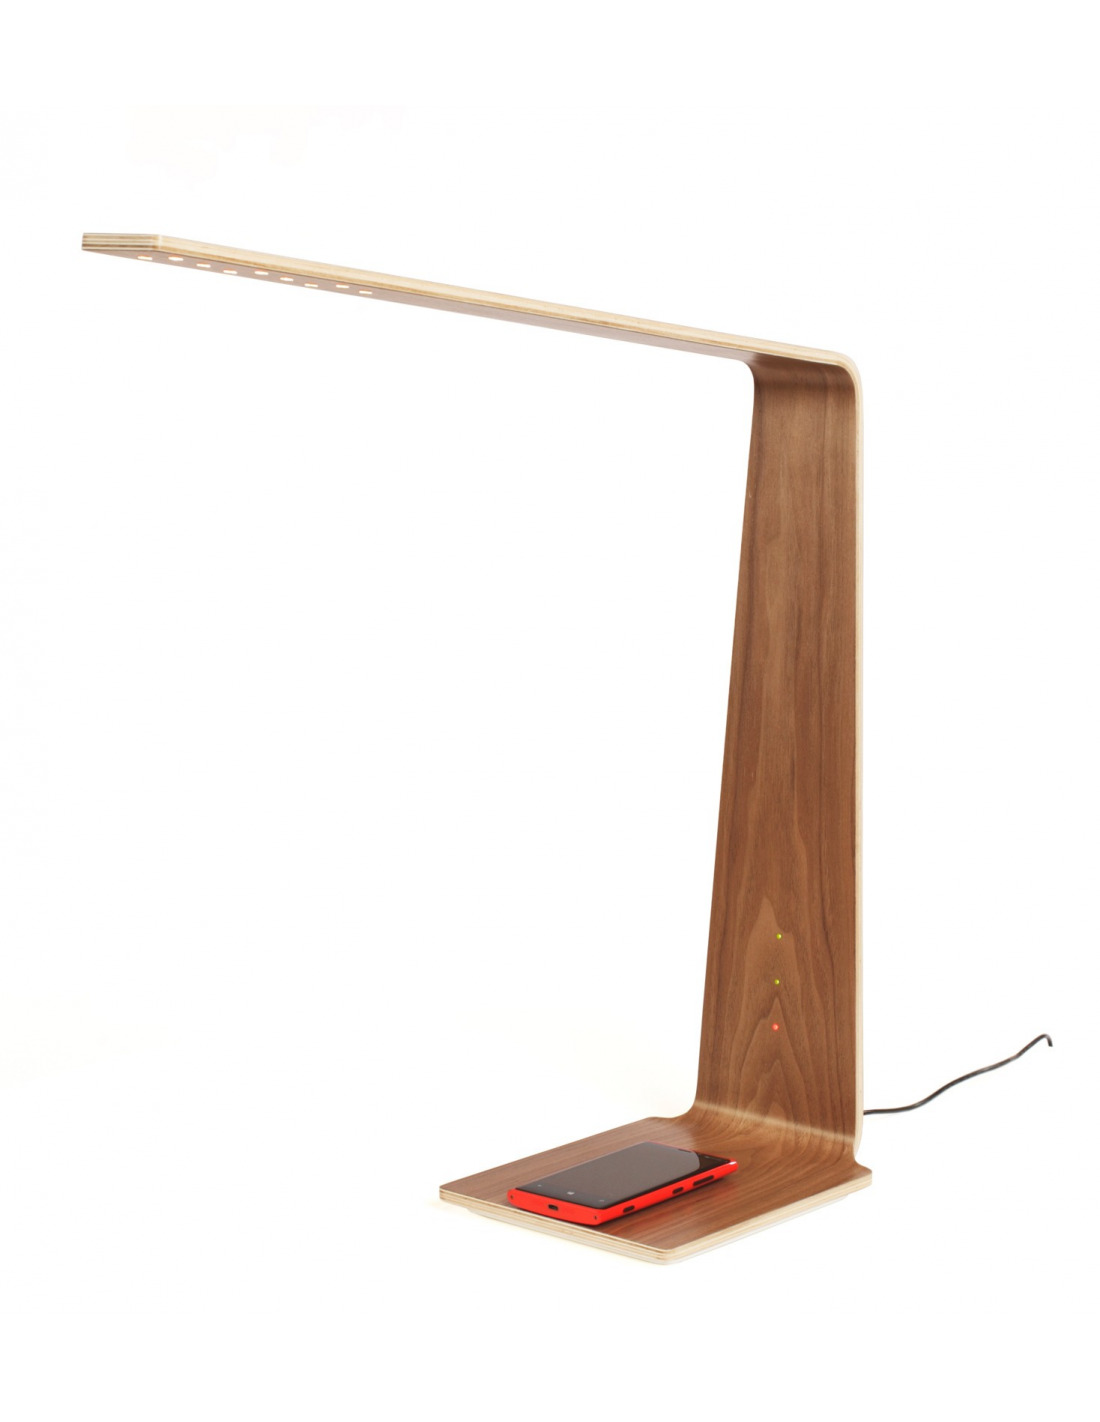 lampe poser tactile et station de charge pour smartphone en bois led 8 au design scandinave et. Black Bedroom Furniture Sets. Home Design Ideas